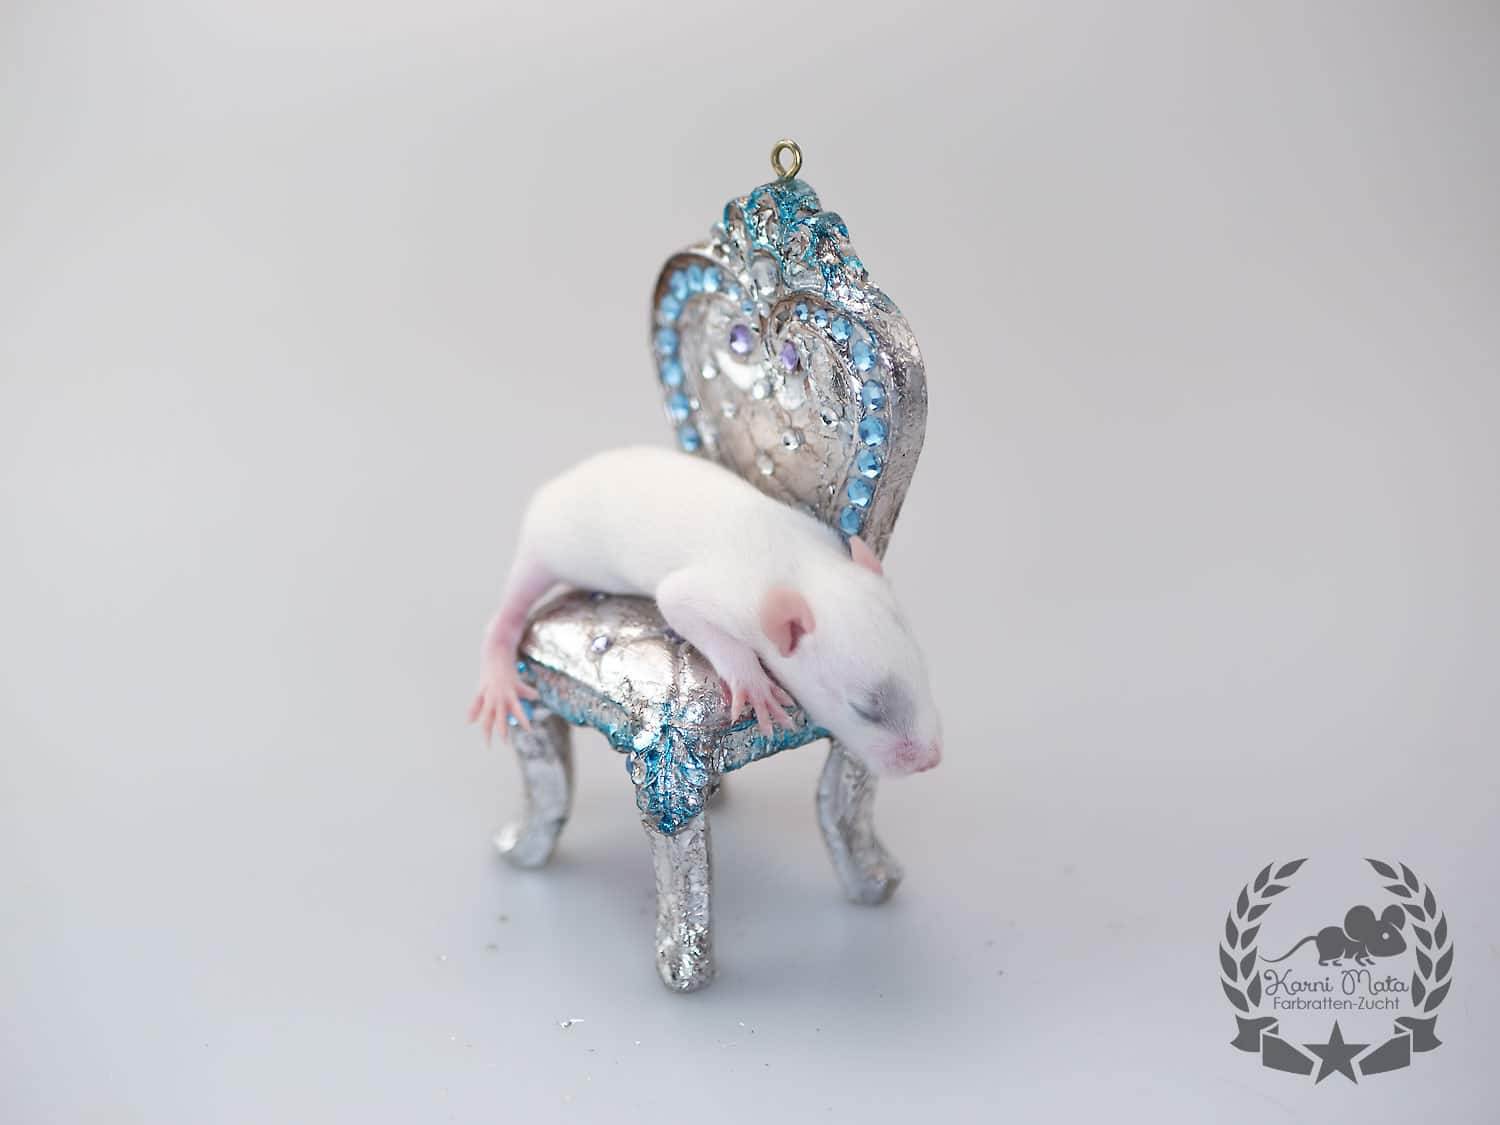 Karni Mata's KM E4 m 03 Long, Farbratte (Fancyrat) Russian Blue Patched